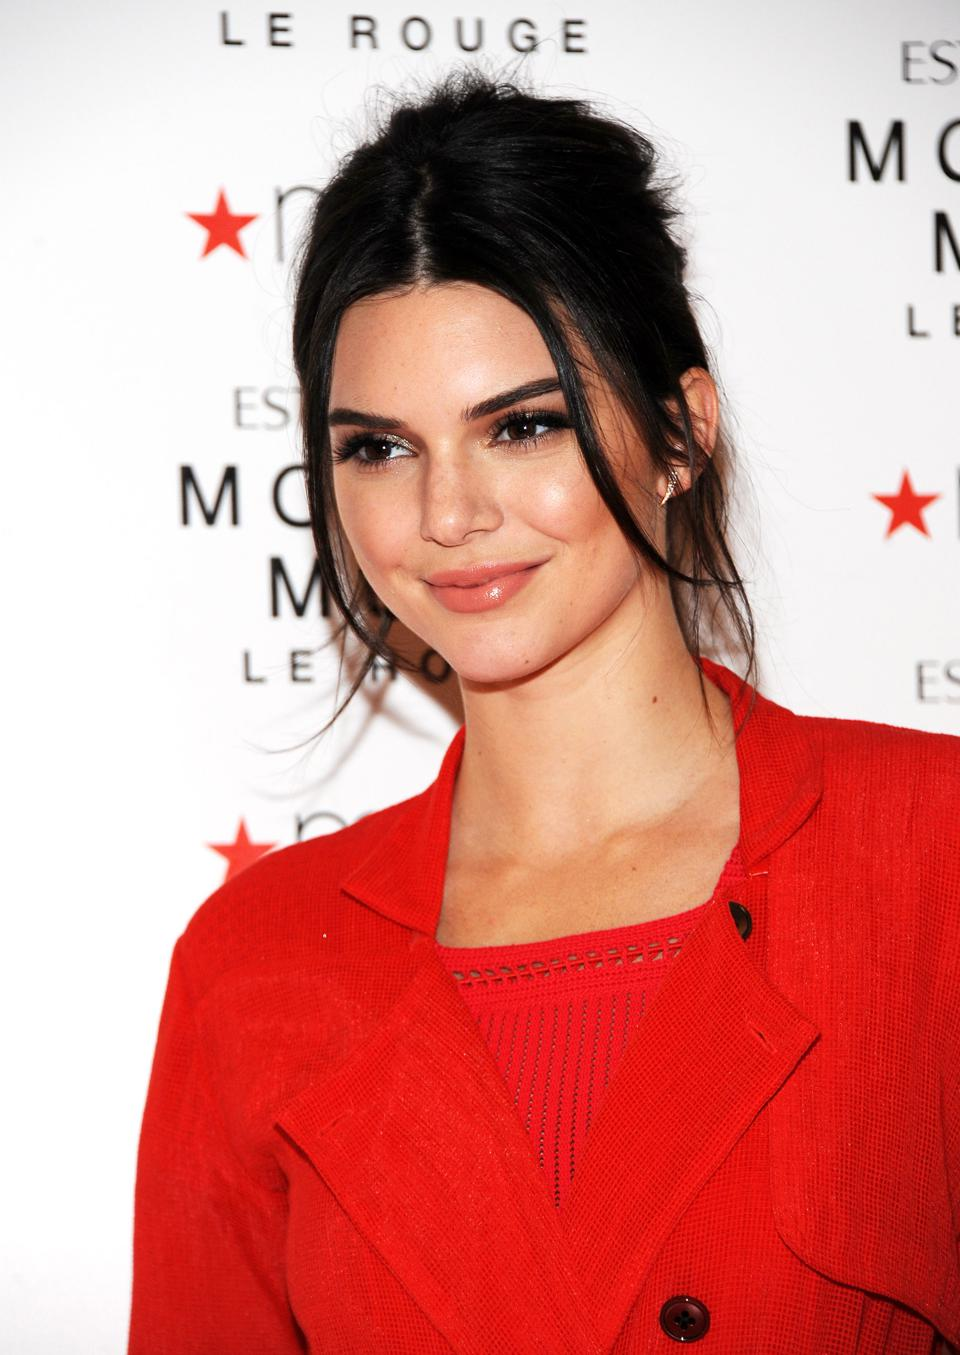 Kendall Jenner Celebrates The Launch Of The New Estee Lauder Fragrance Modern Muse Le Rouge